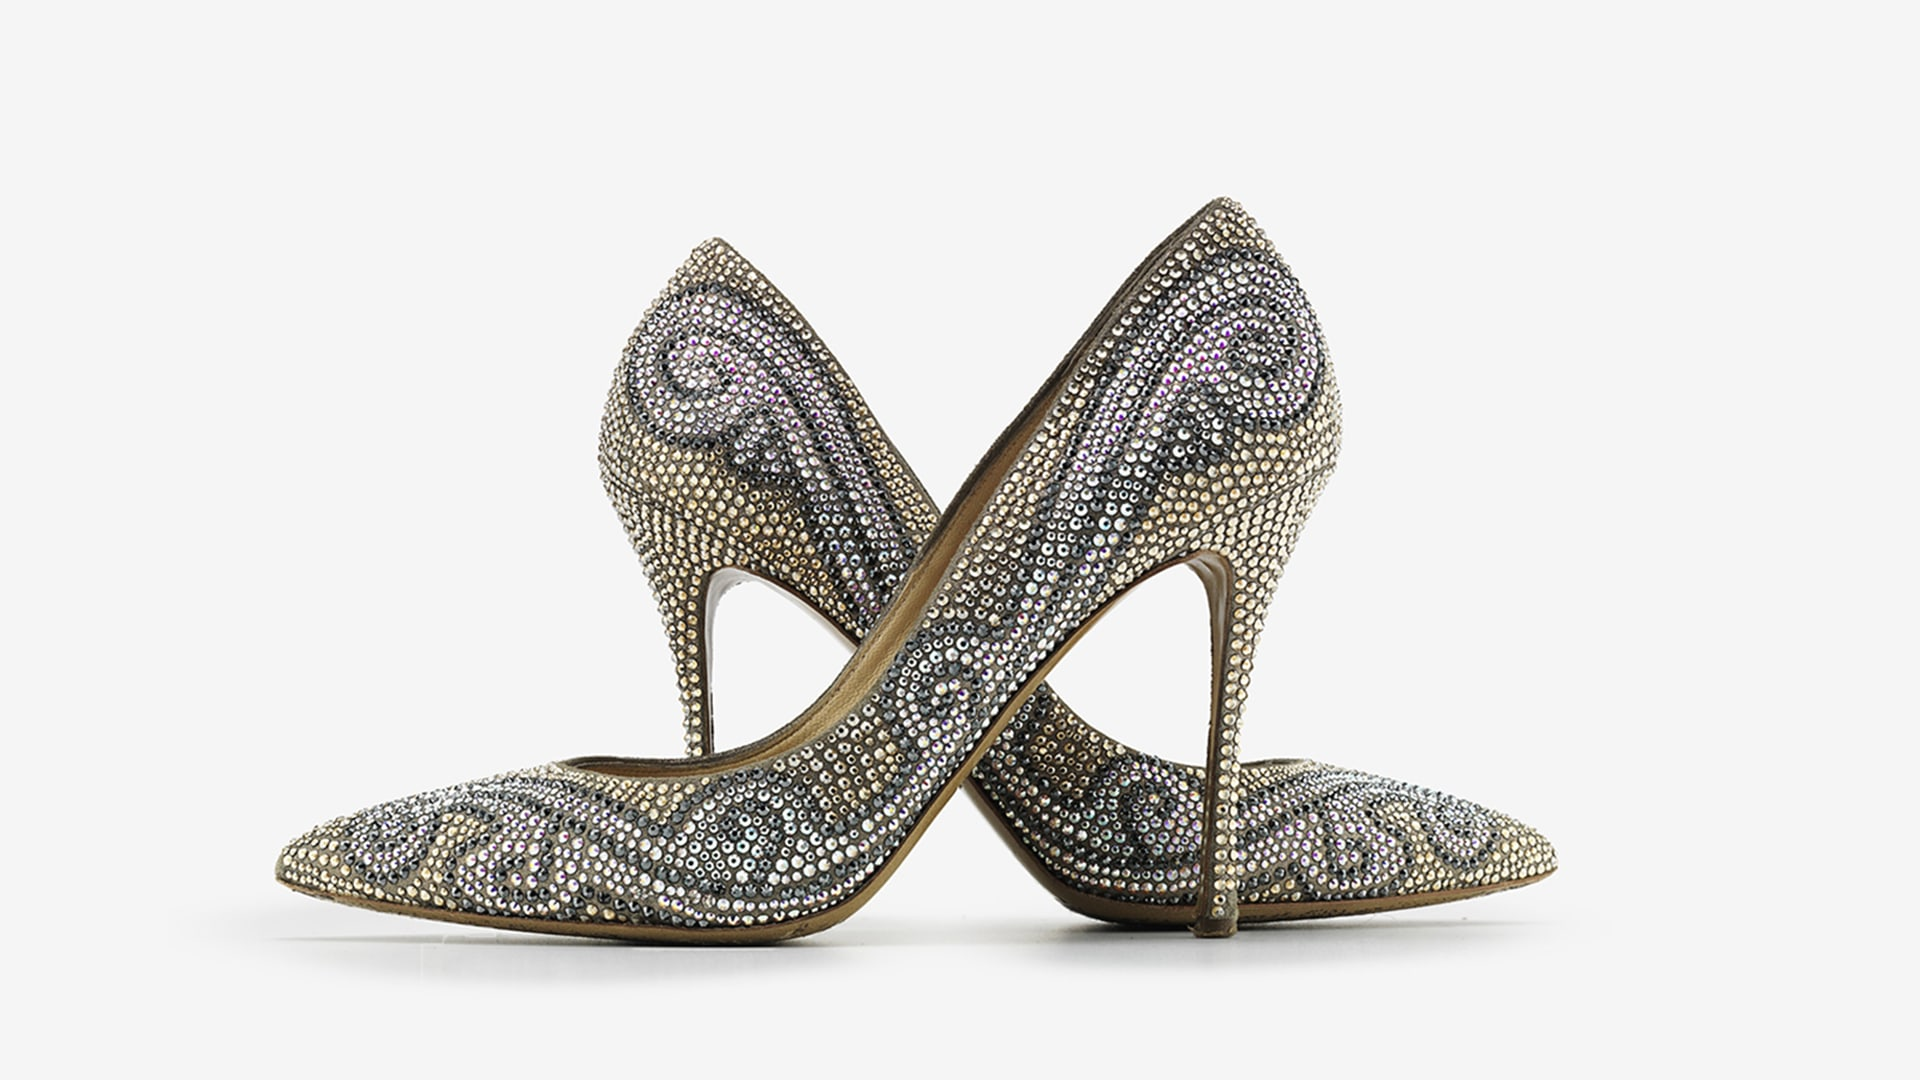 Christian Louboutin United States Online BoutiqueClient Service Mon-Sat· Free Standard Shipping· Free Returns· Online Personal ShoppersTypes: Shoes, Bags, Small Leather Goods.